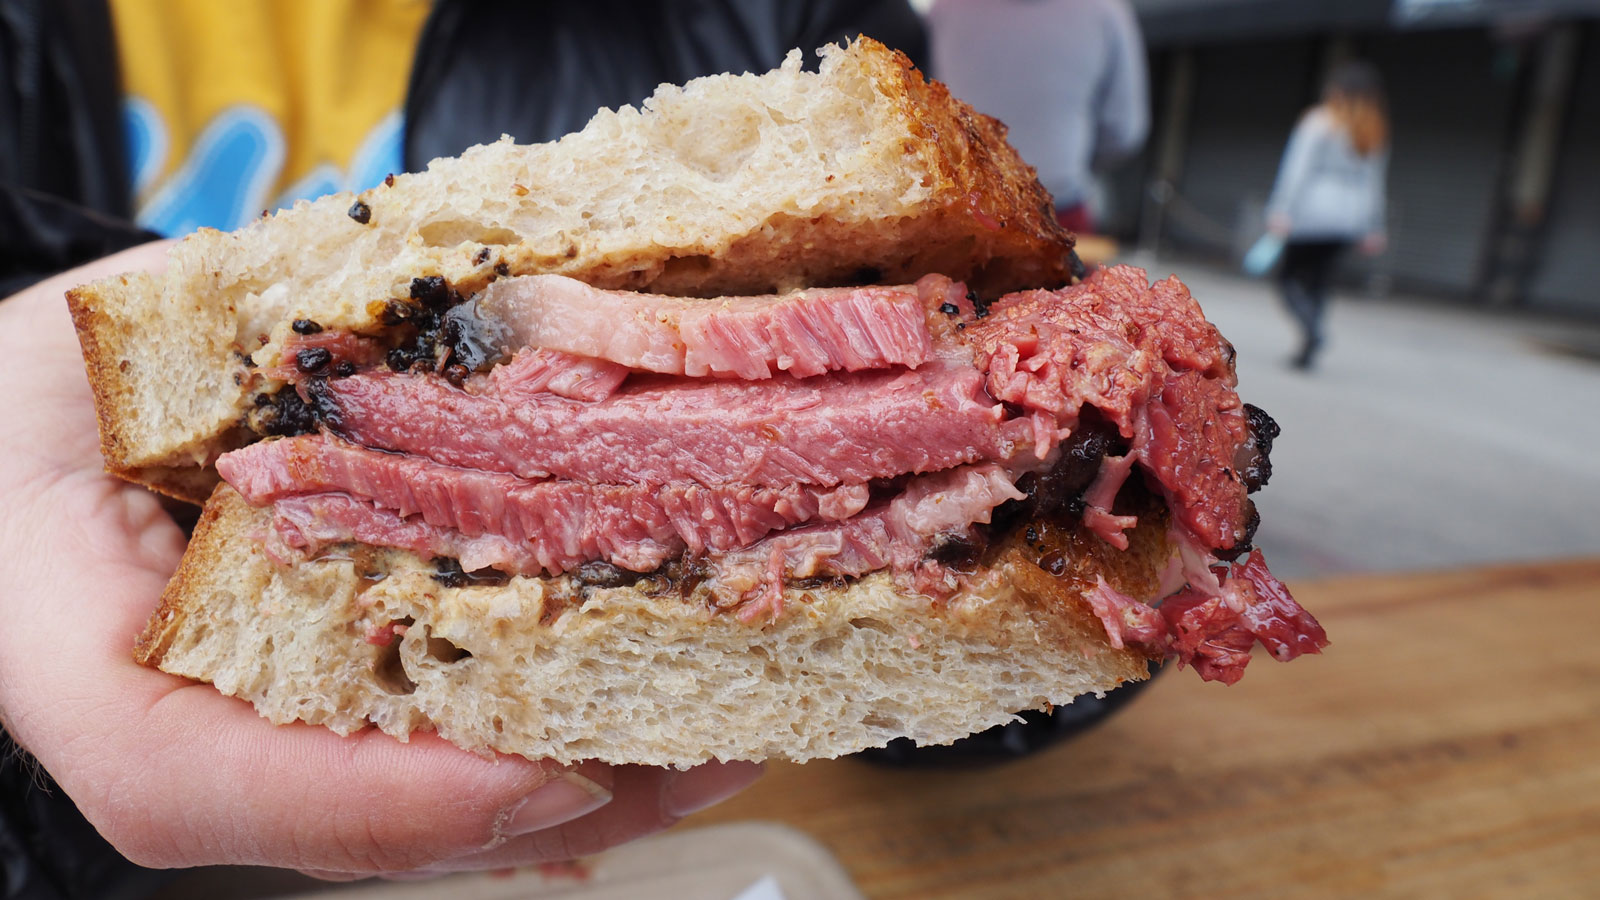 Quarter pound pastrami sandwich at Ugly Drum